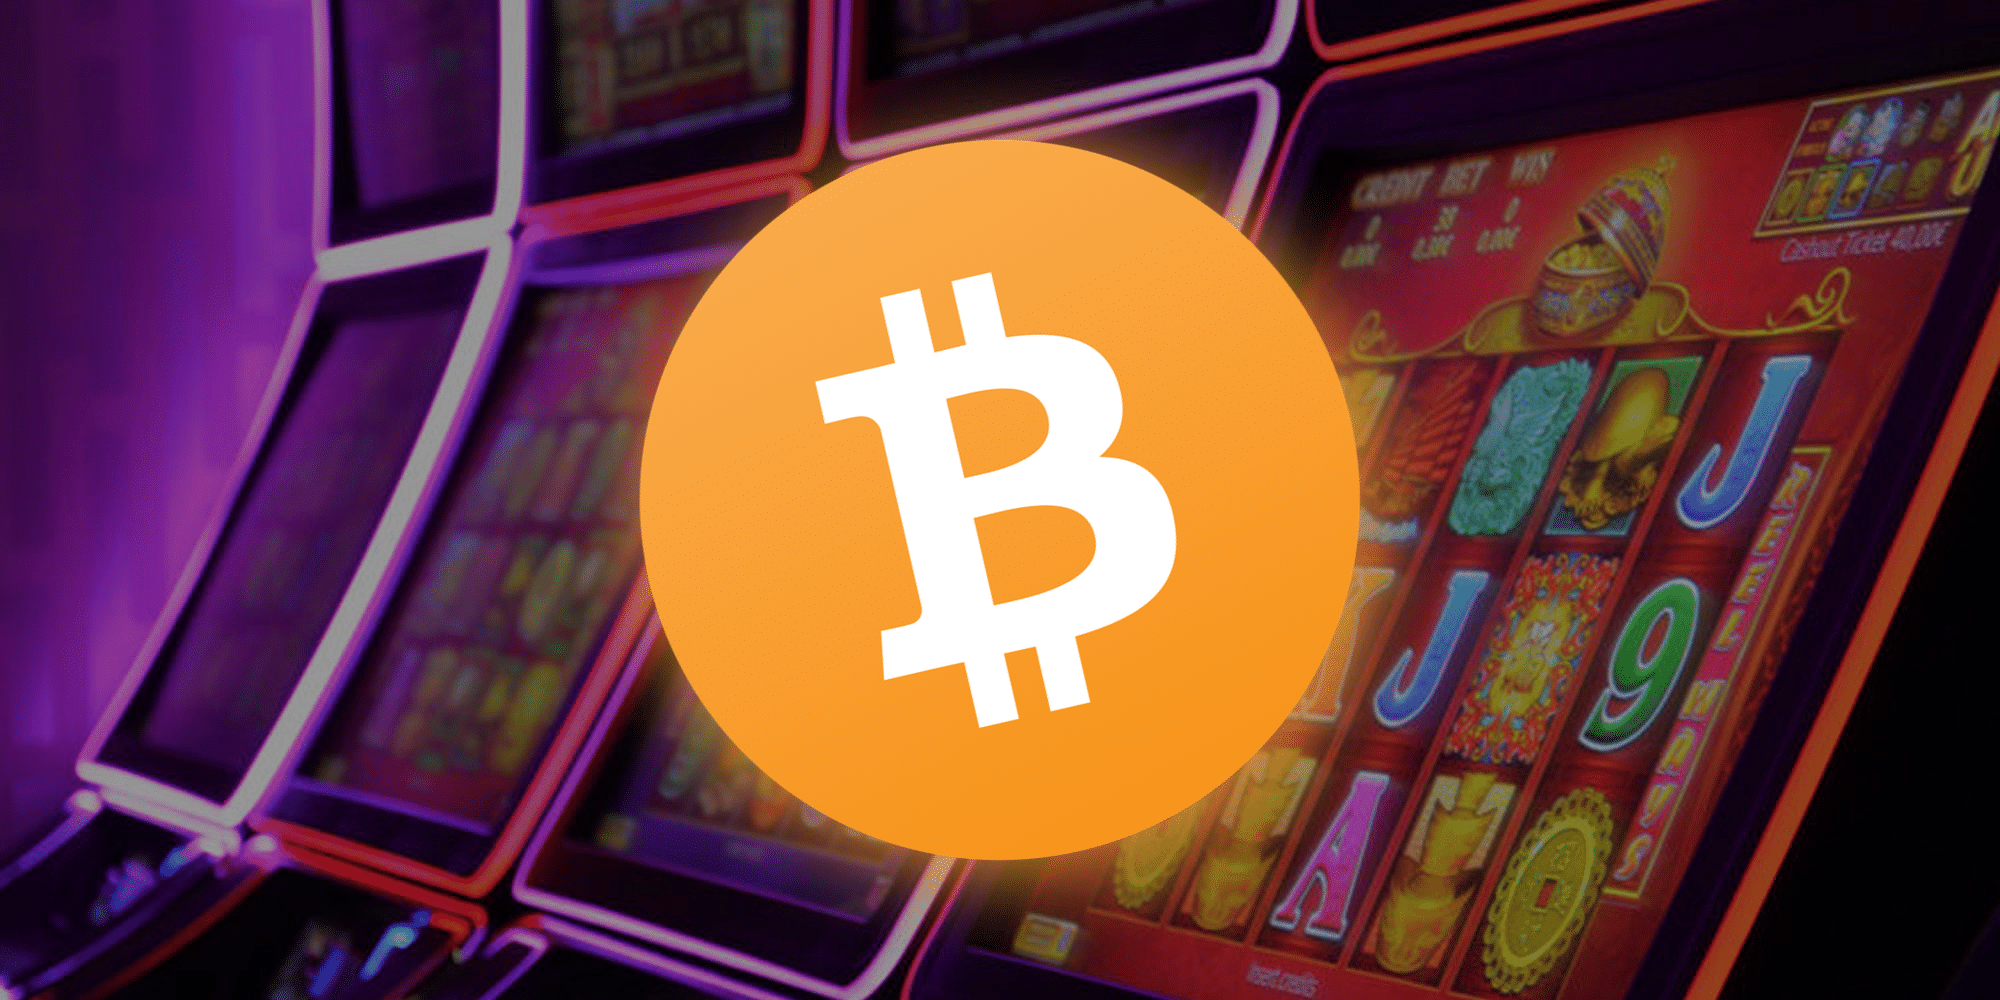 Gold and bitcoin casino